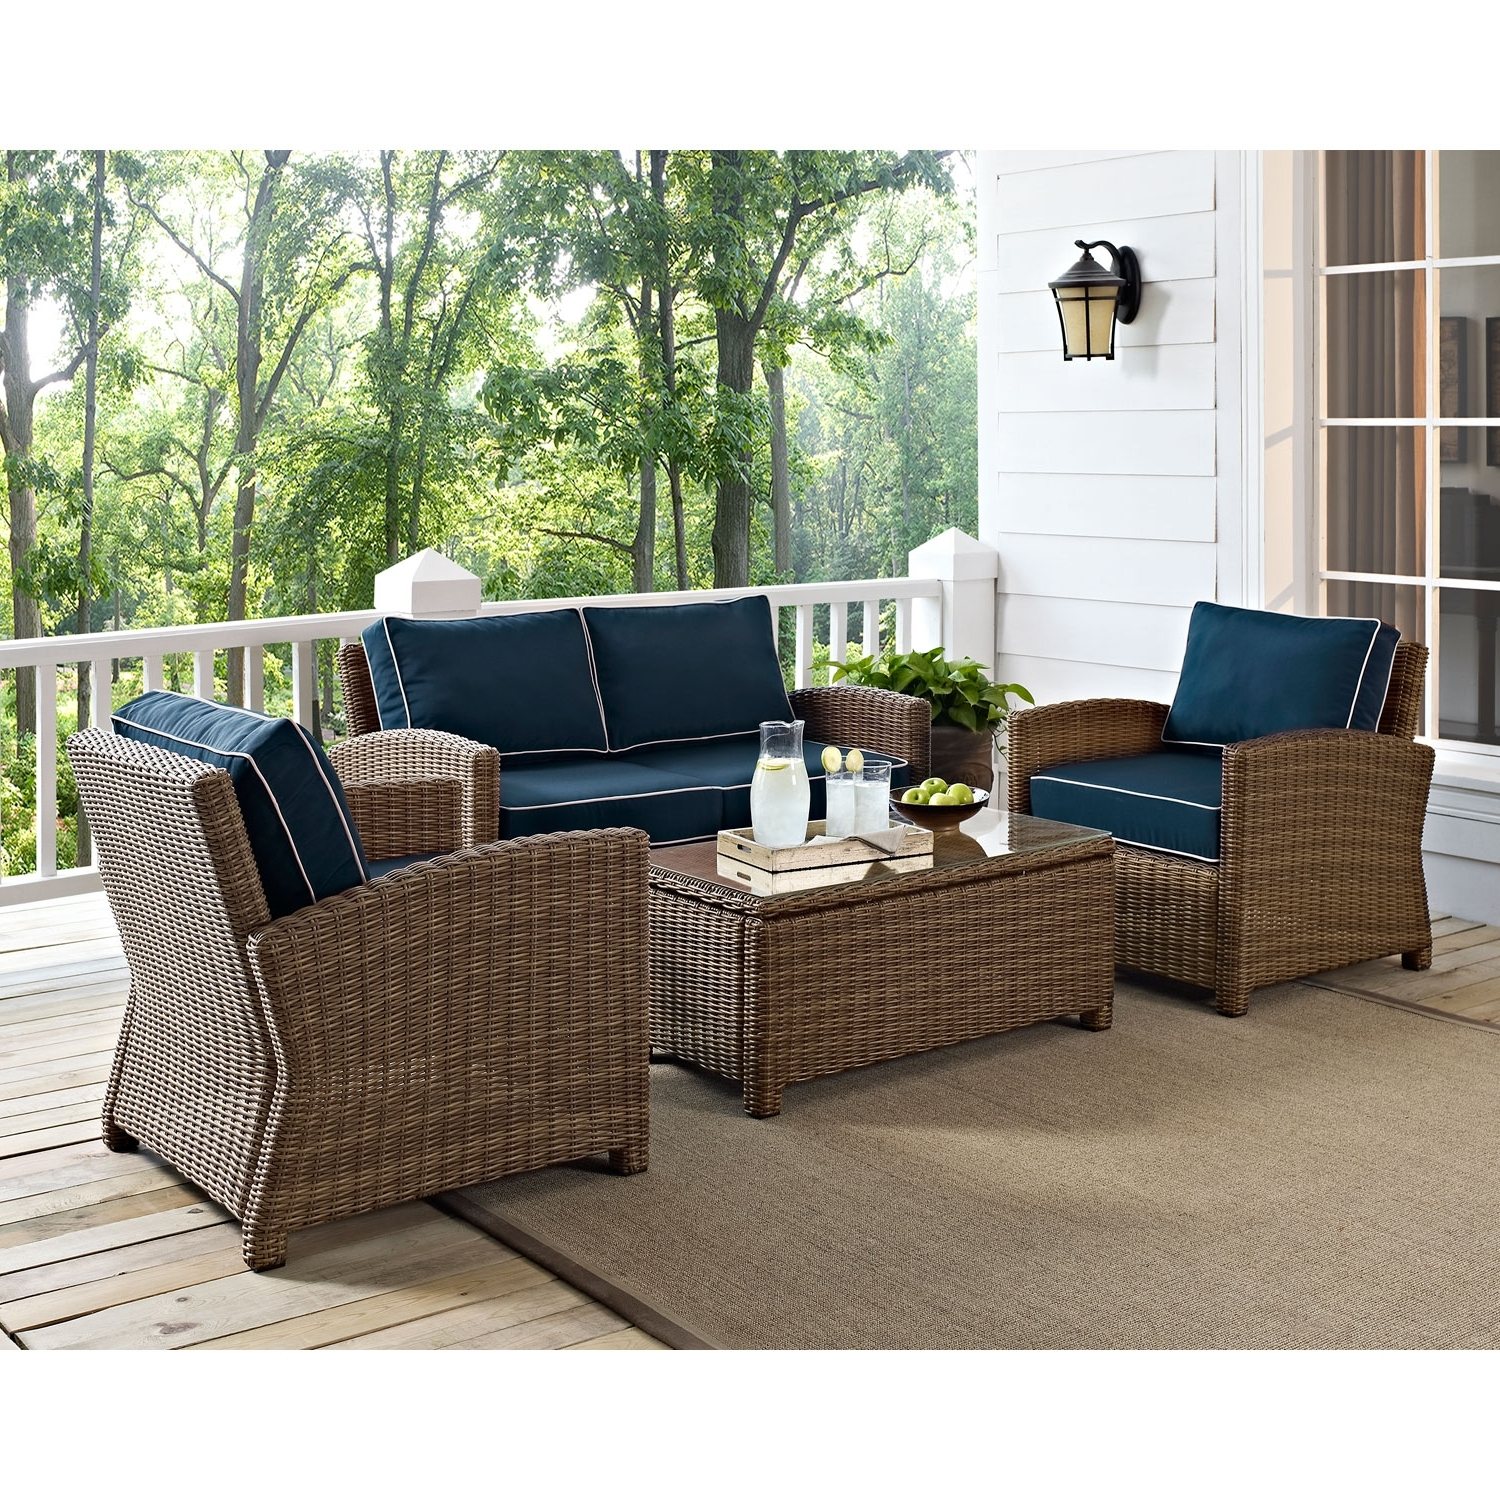 Fashionable Patio Conversation Sets Without Cushions Intended For Crosley Furniture Bradenton 4 Piece Outdoor Wicker Seating Set With (View 4 of 20)